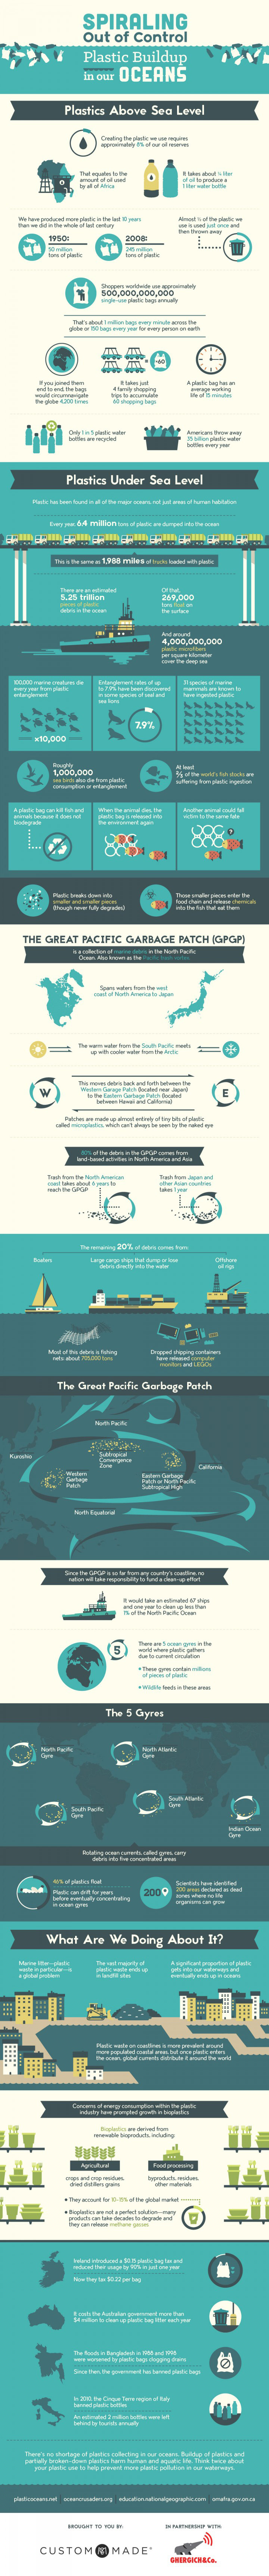 ocean plastic, ocean garbage, plastic in the ocean, gyres, plastic gyres, ocean garbage patch, pacific garbage patch, trash ocean, ocean clean up, infographic, reader submission